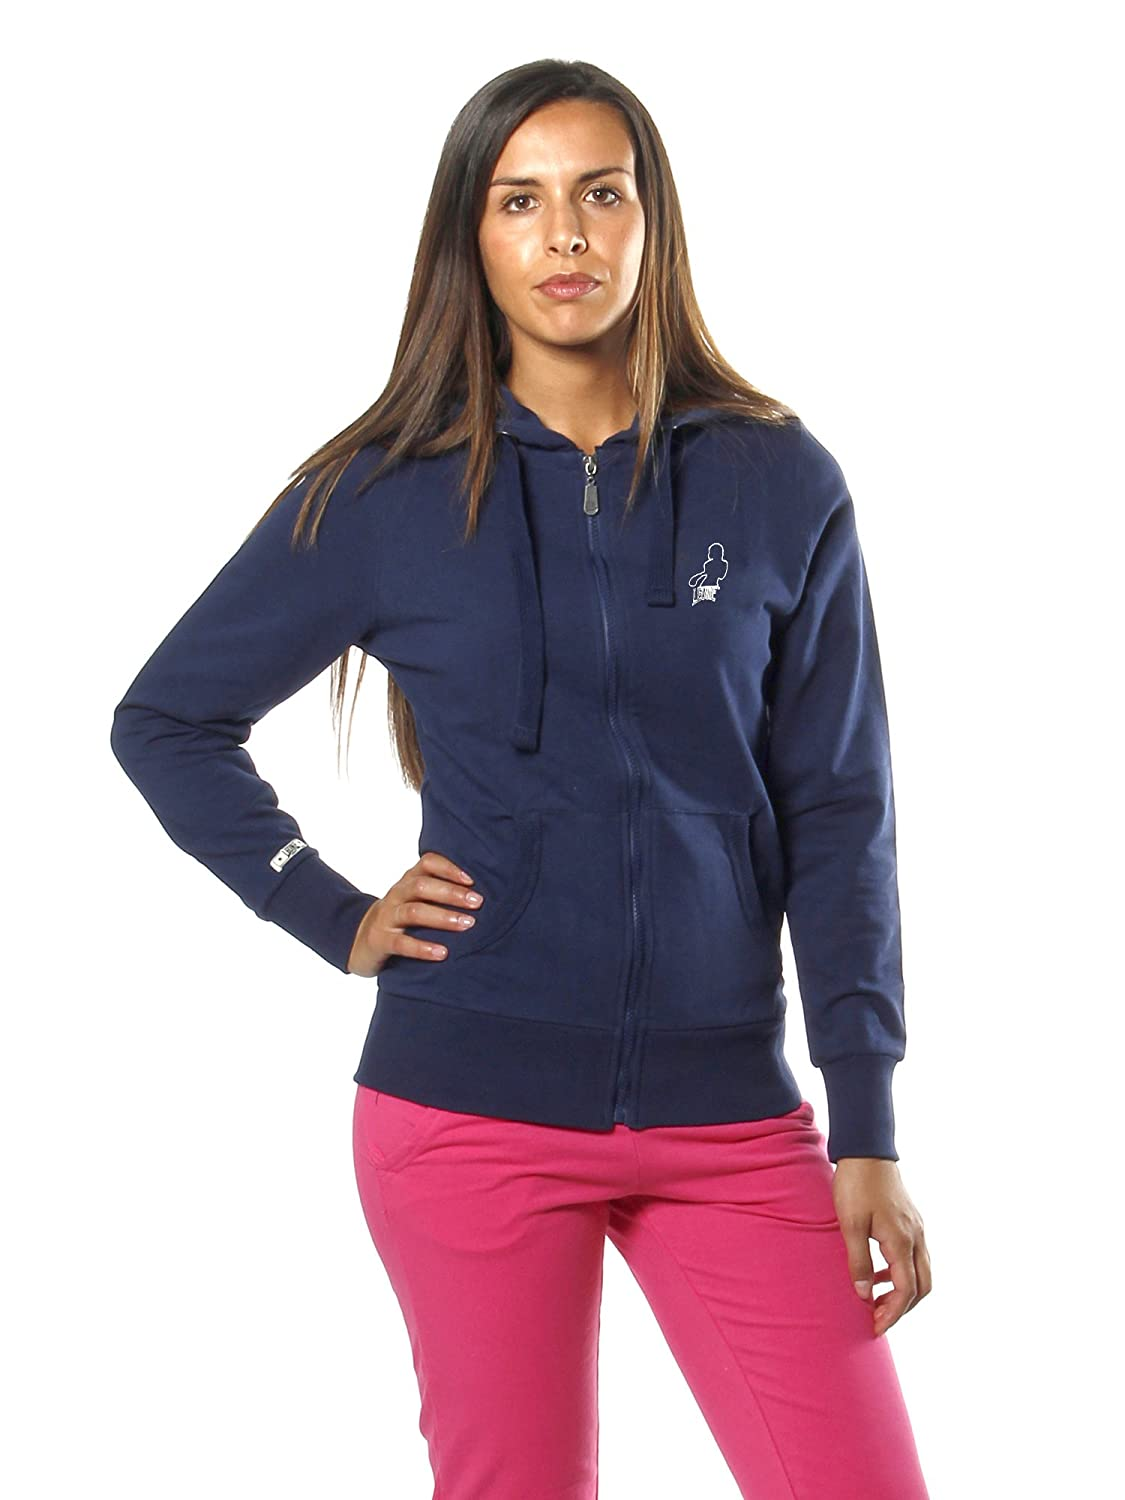 LEONE 1947 APPAREL Sport Fight Activewear Lw850, Felpa con Cappuccio e Zip Donna Banana Blue